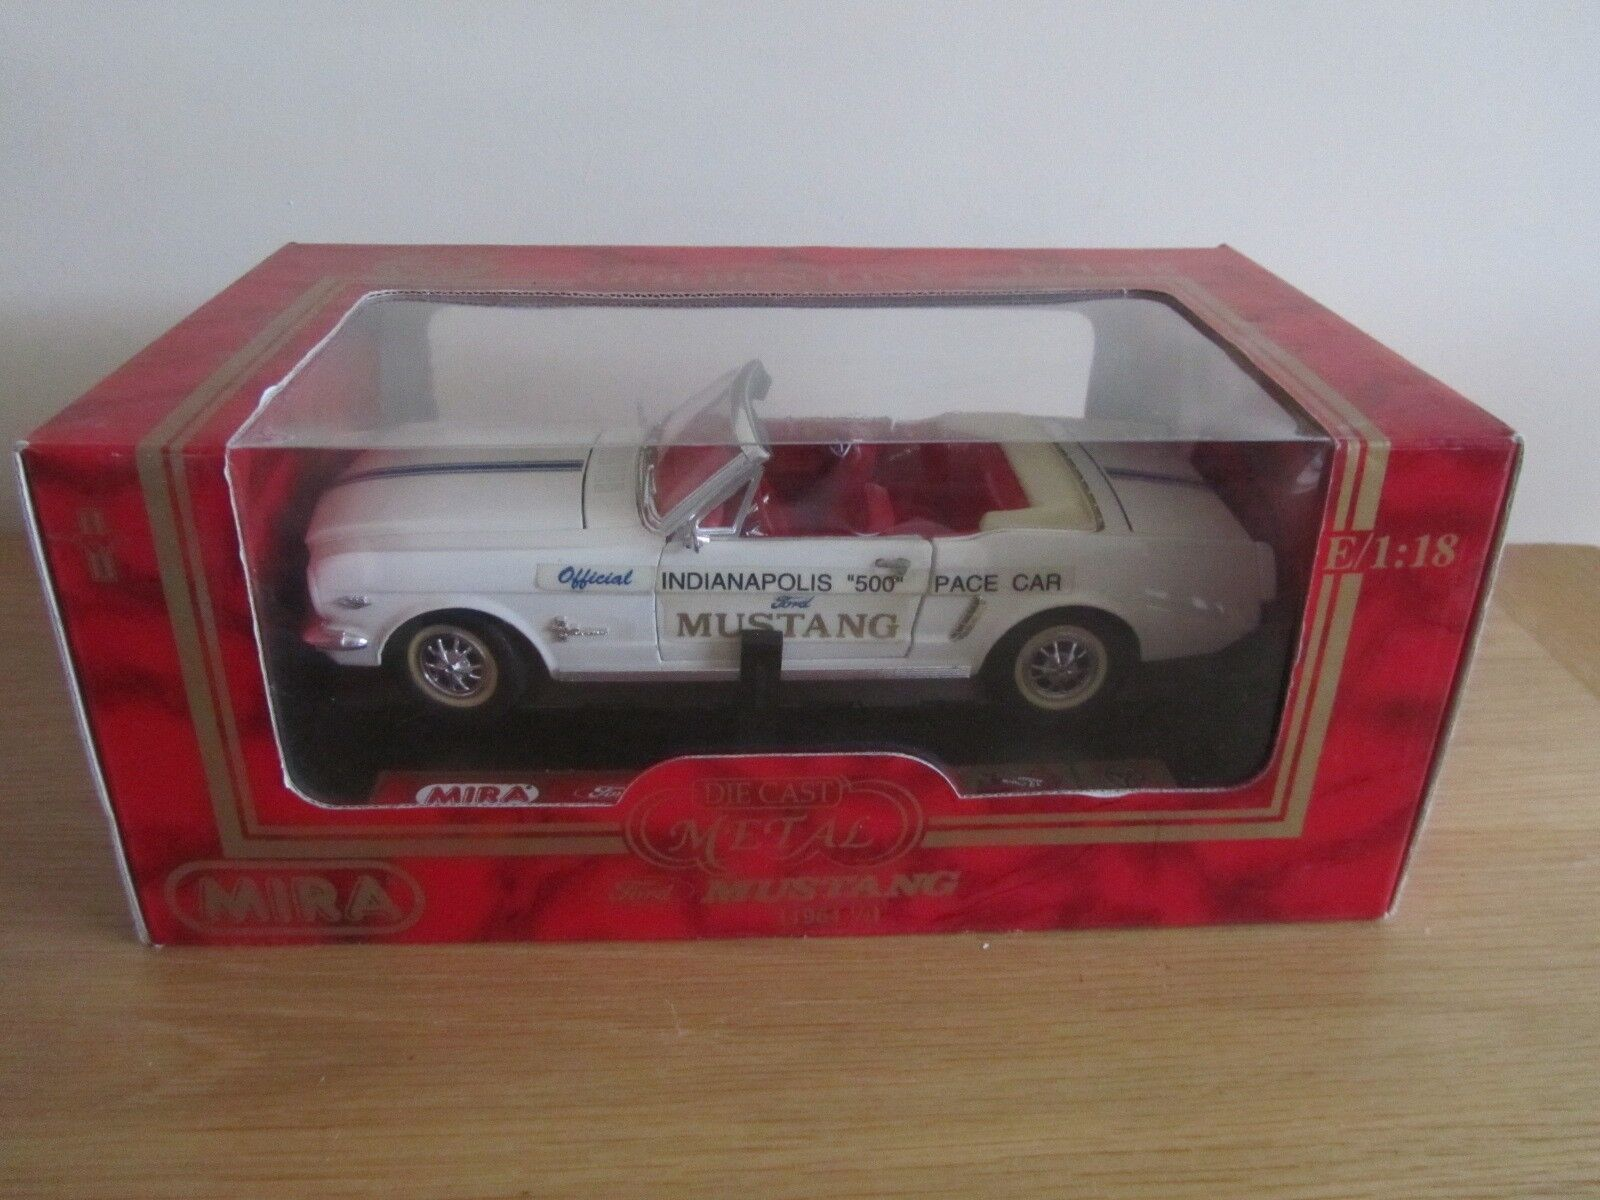 Mira oren Line échelle 1 18 Ford Mustang indi. 500 Pace Voiture DIE CAST MODEL BOXED